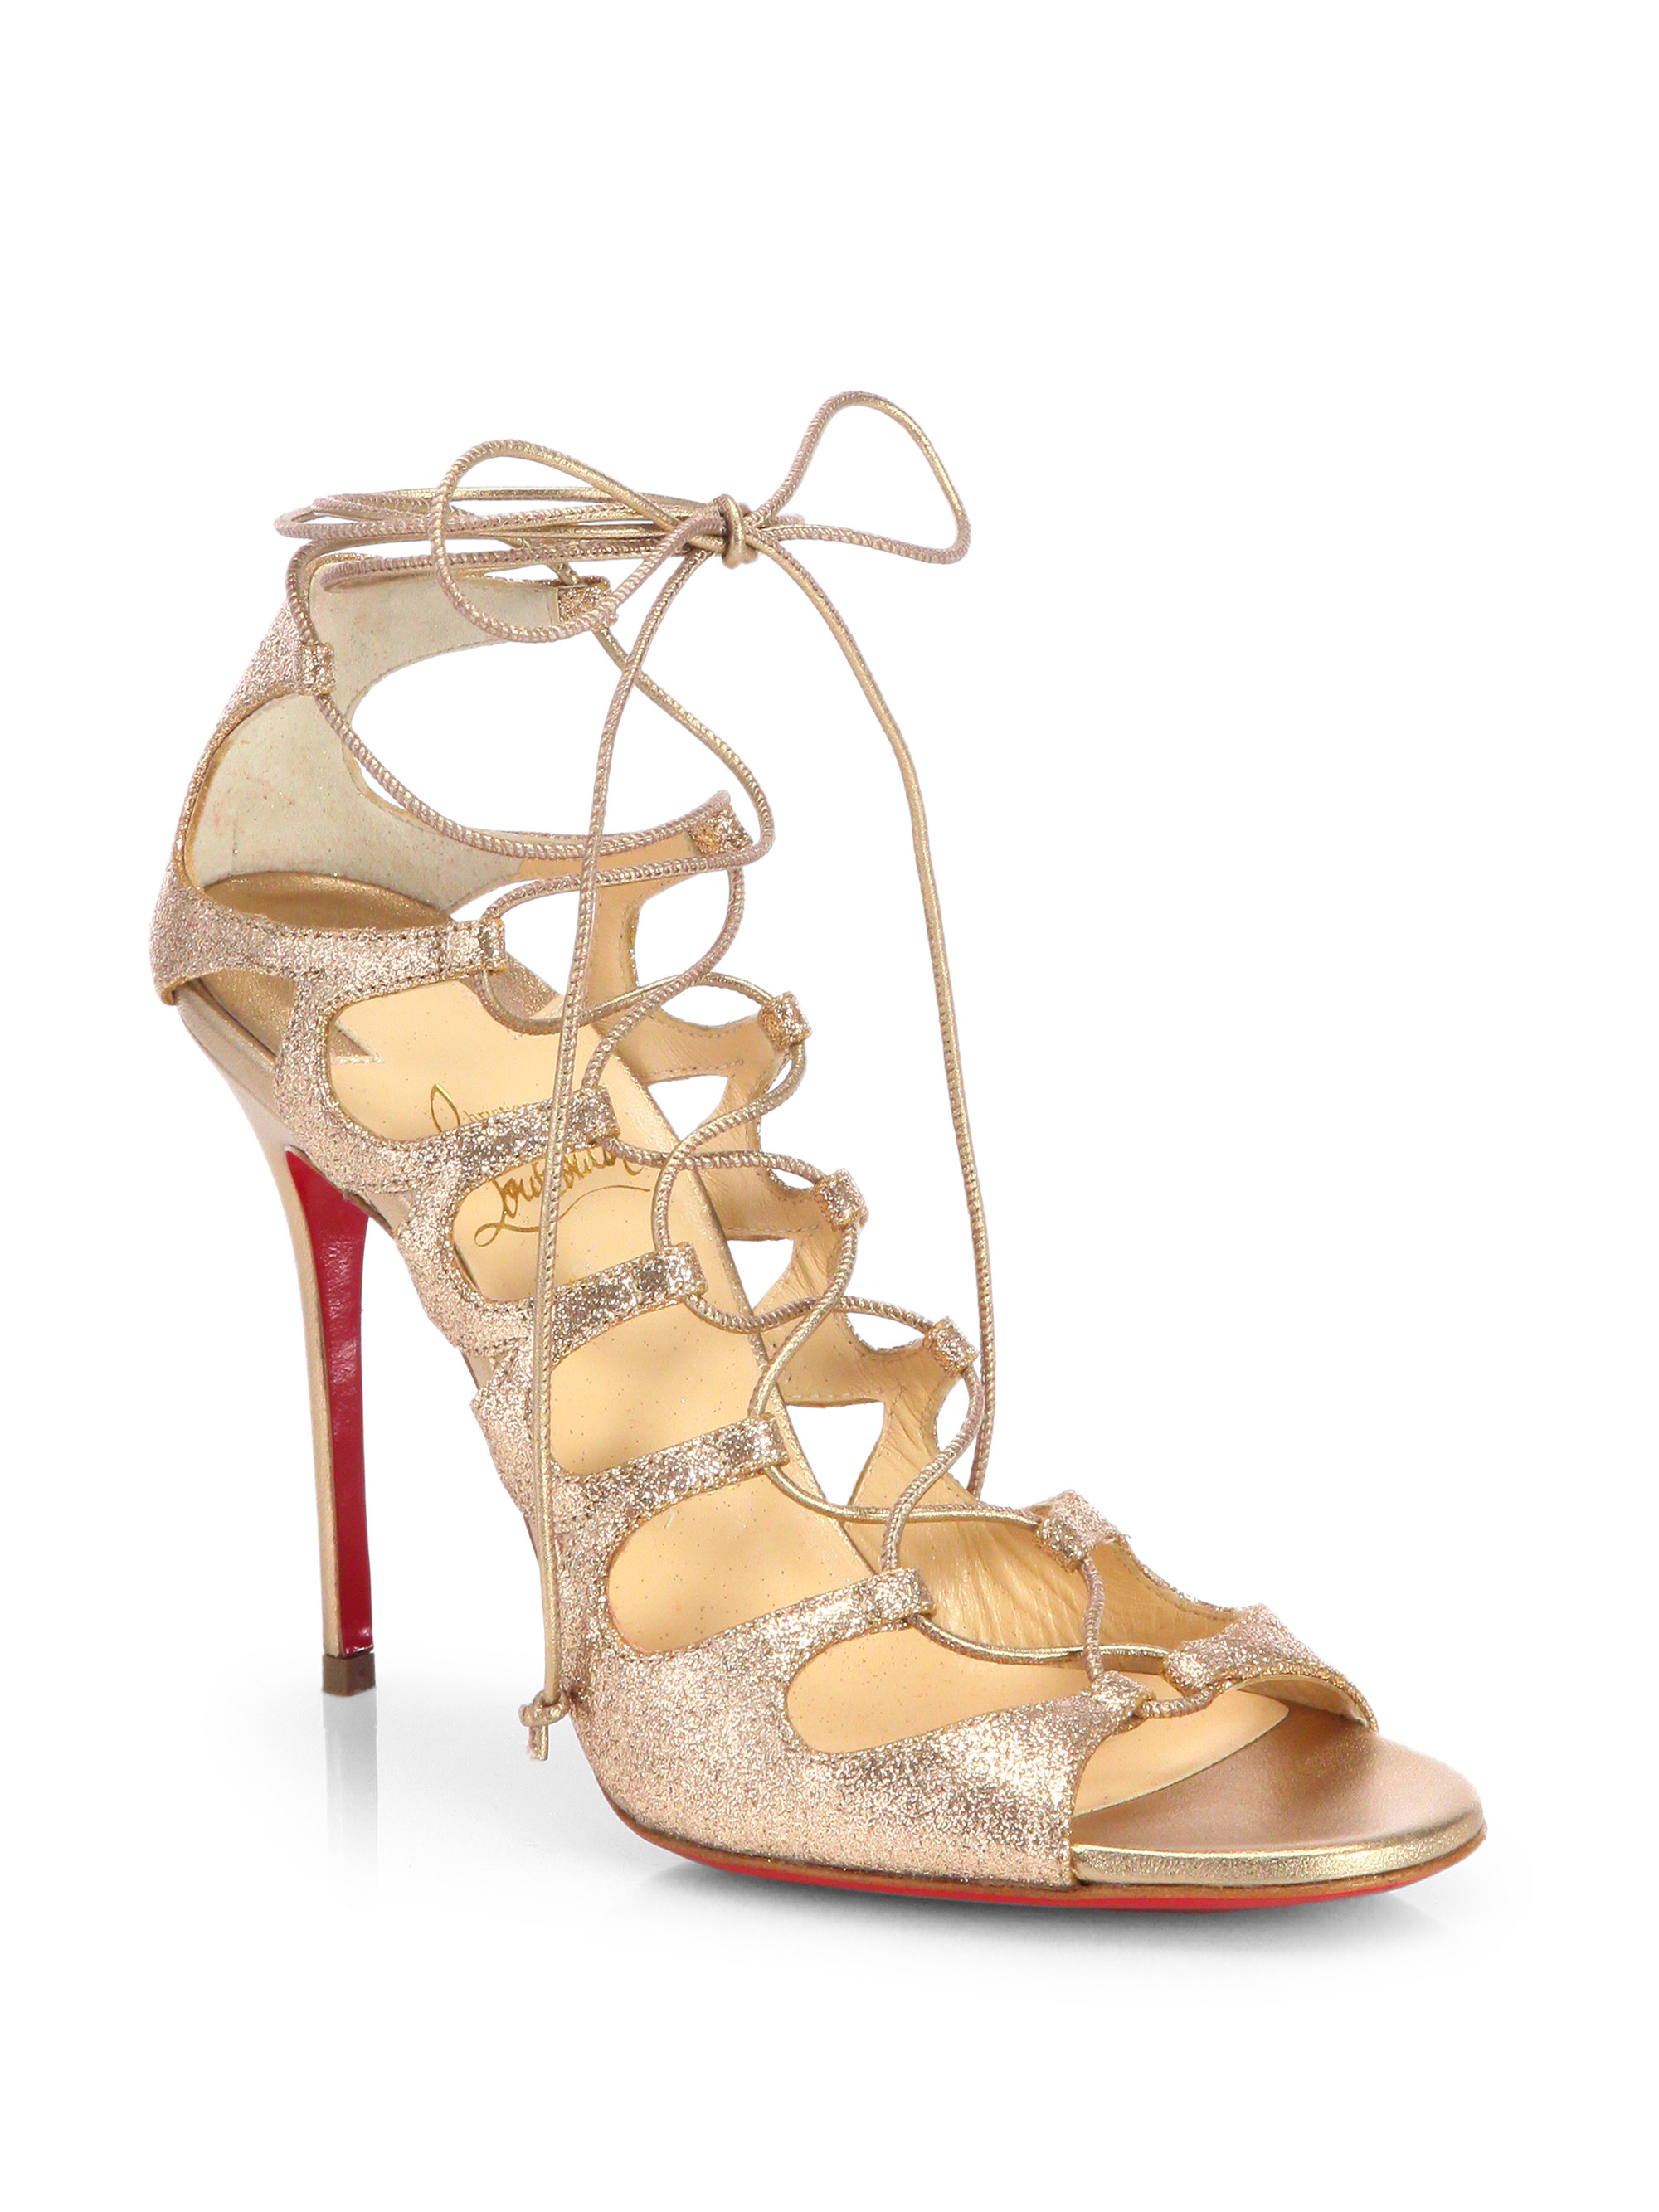 christian louboutin gold flat sandals